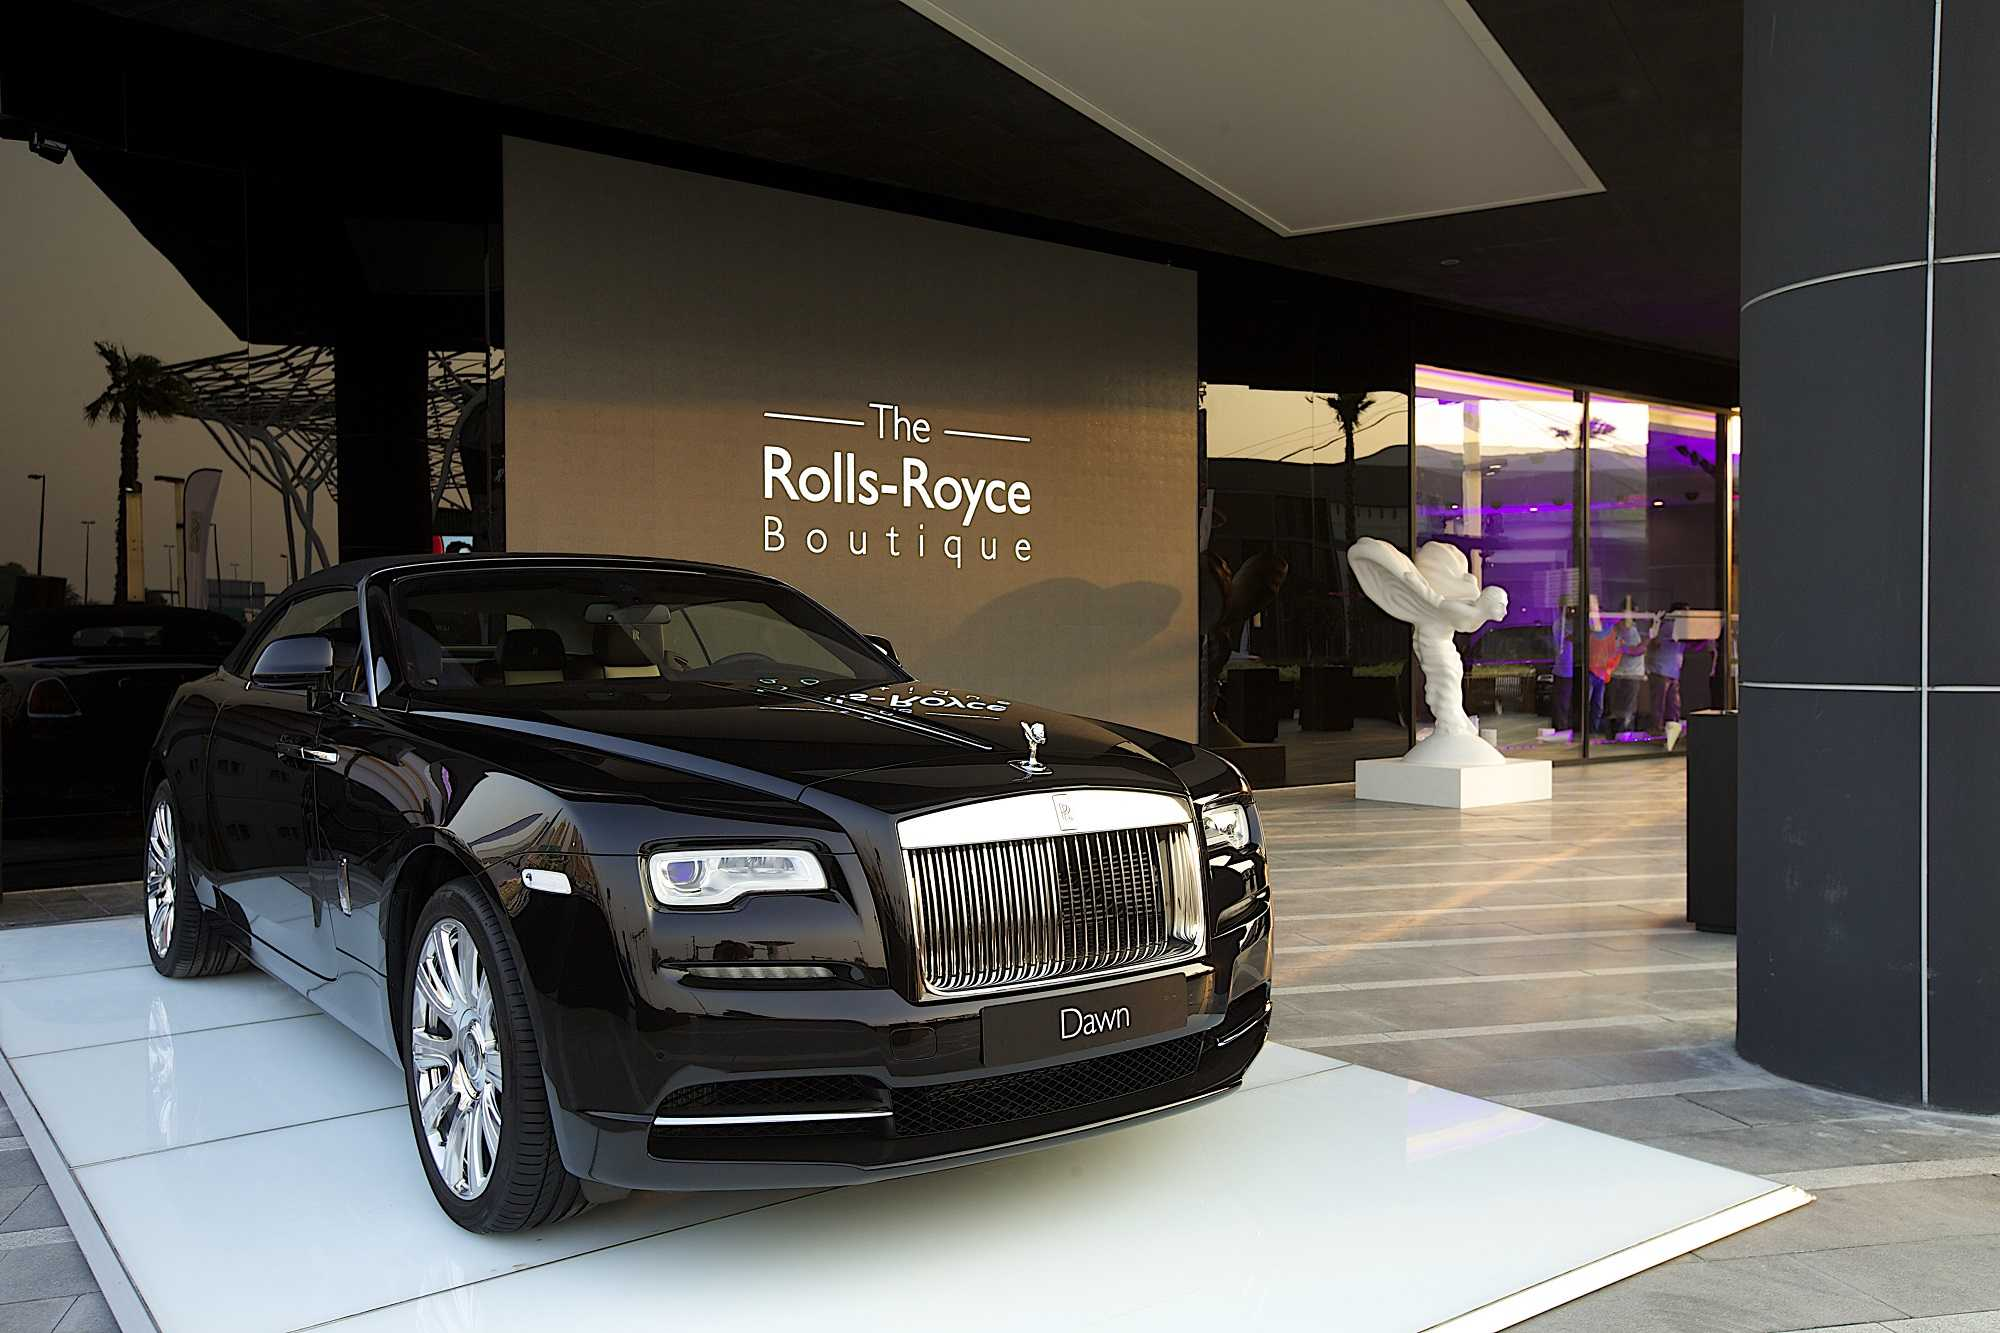 ROLLS ROYCE MOTOR CARS UNVEILS FIRST EVER ROLLS ROYCE BOUTIQUE